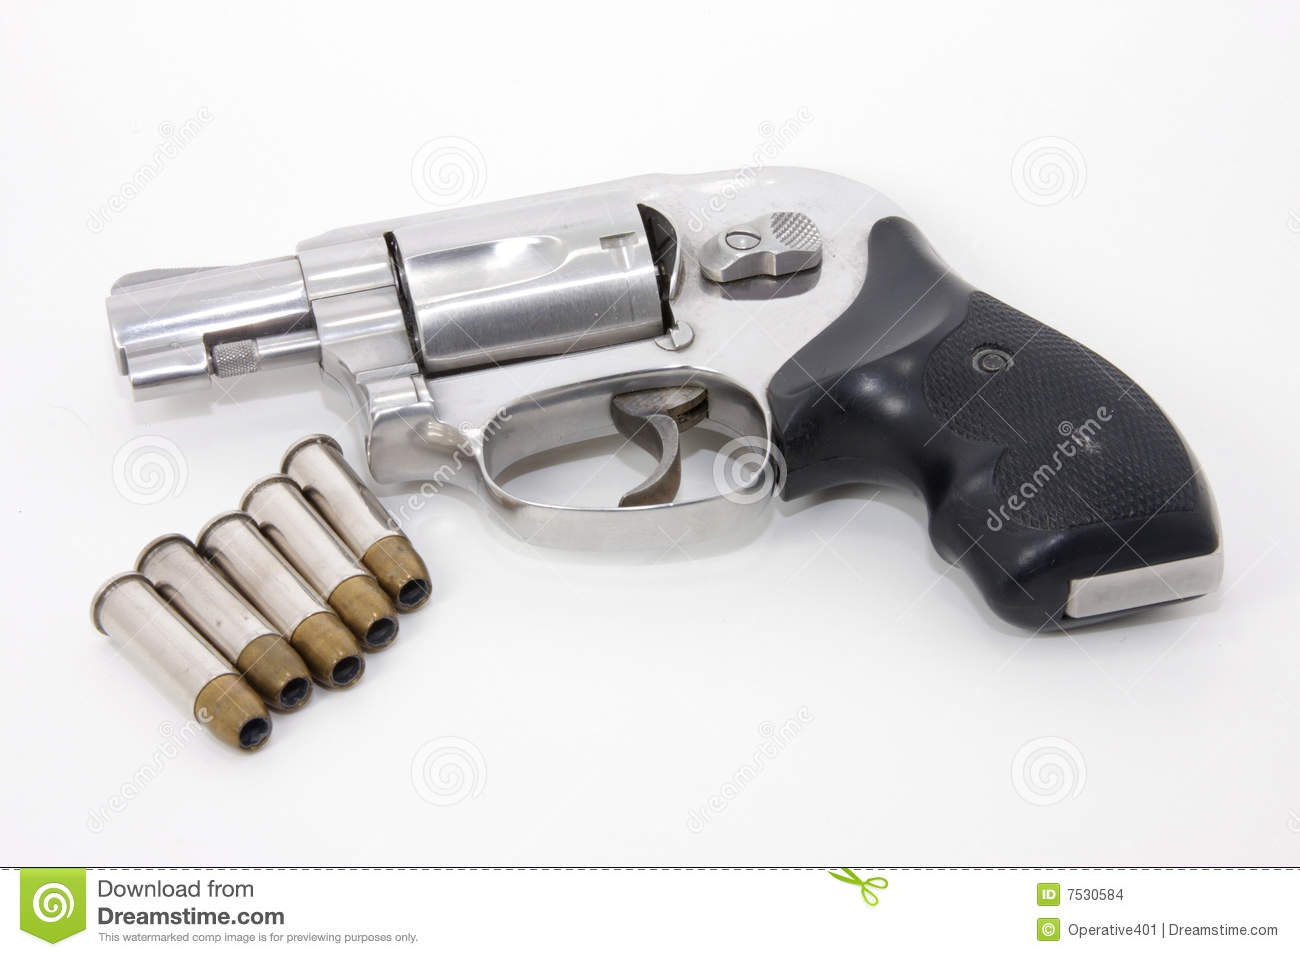 how to clean a 38 revolver